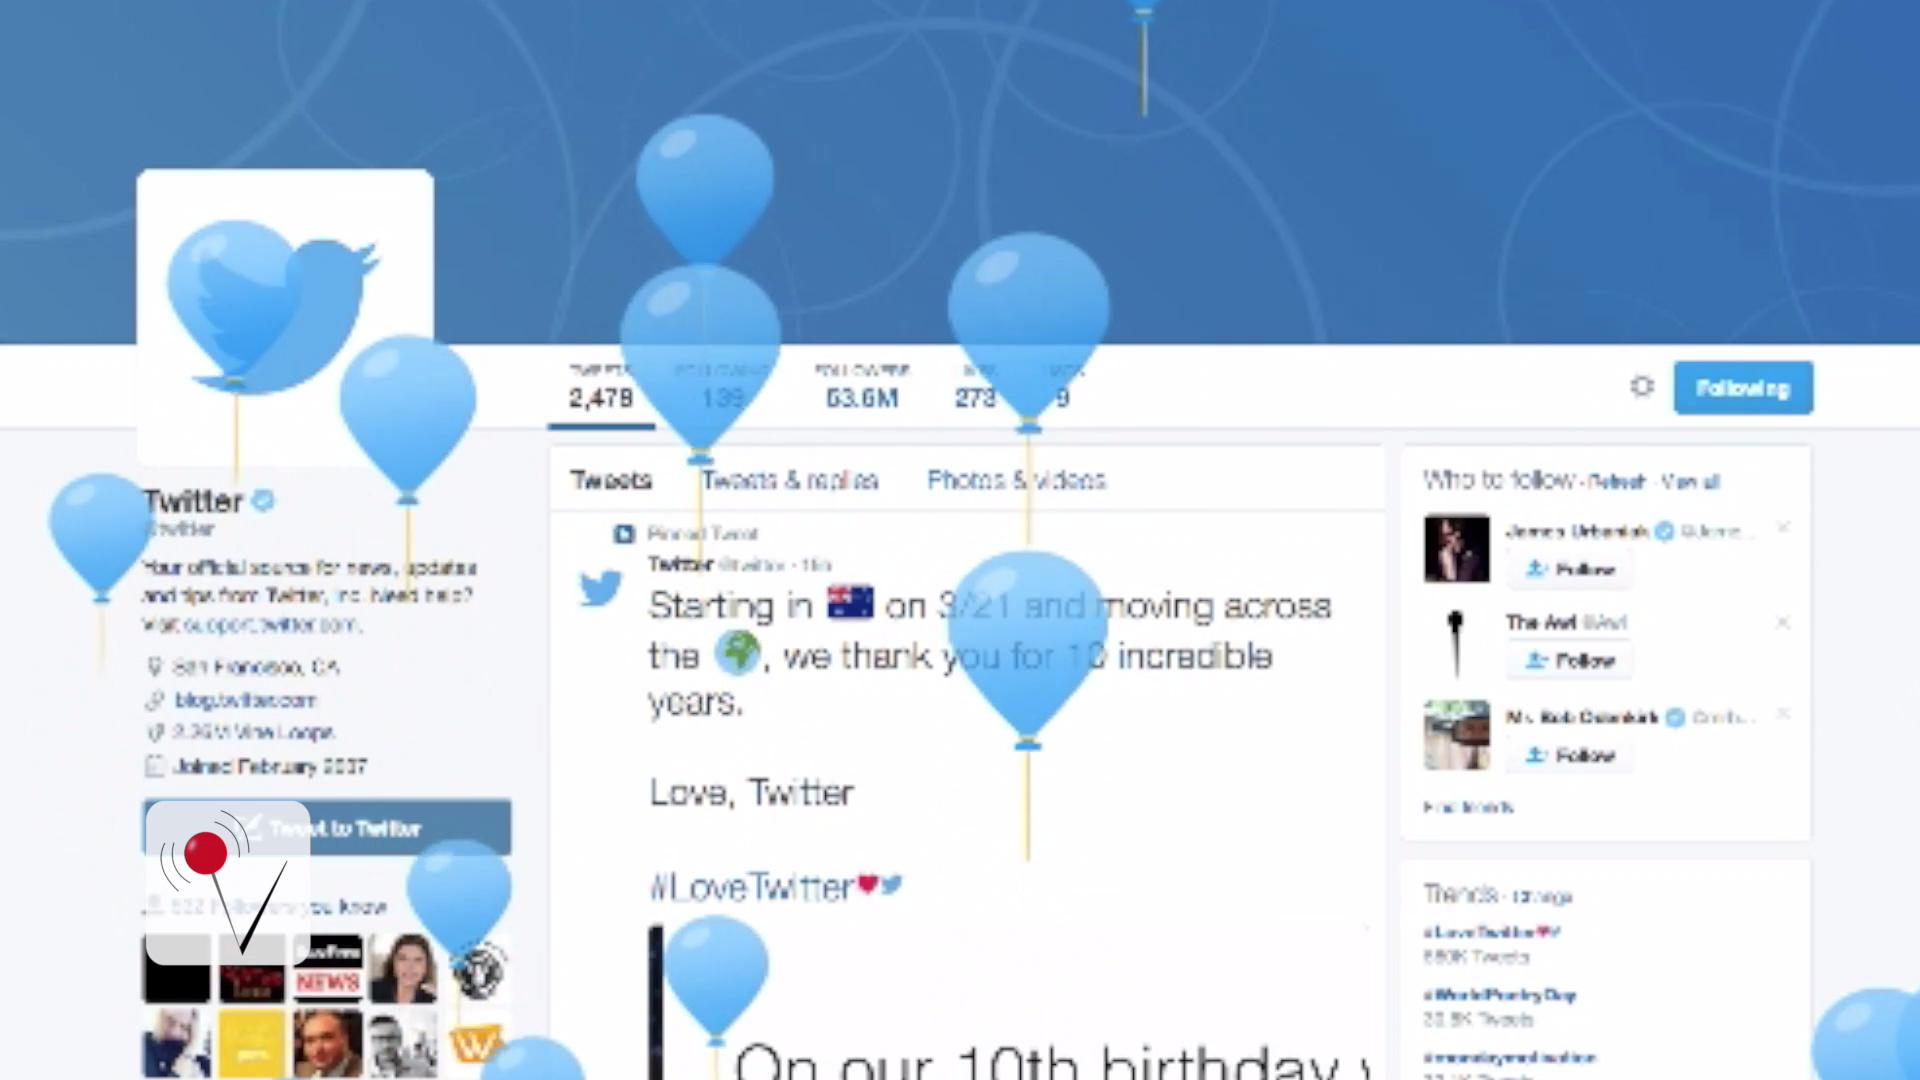 Twitter Turns 10 and Celebrates with Cool Video